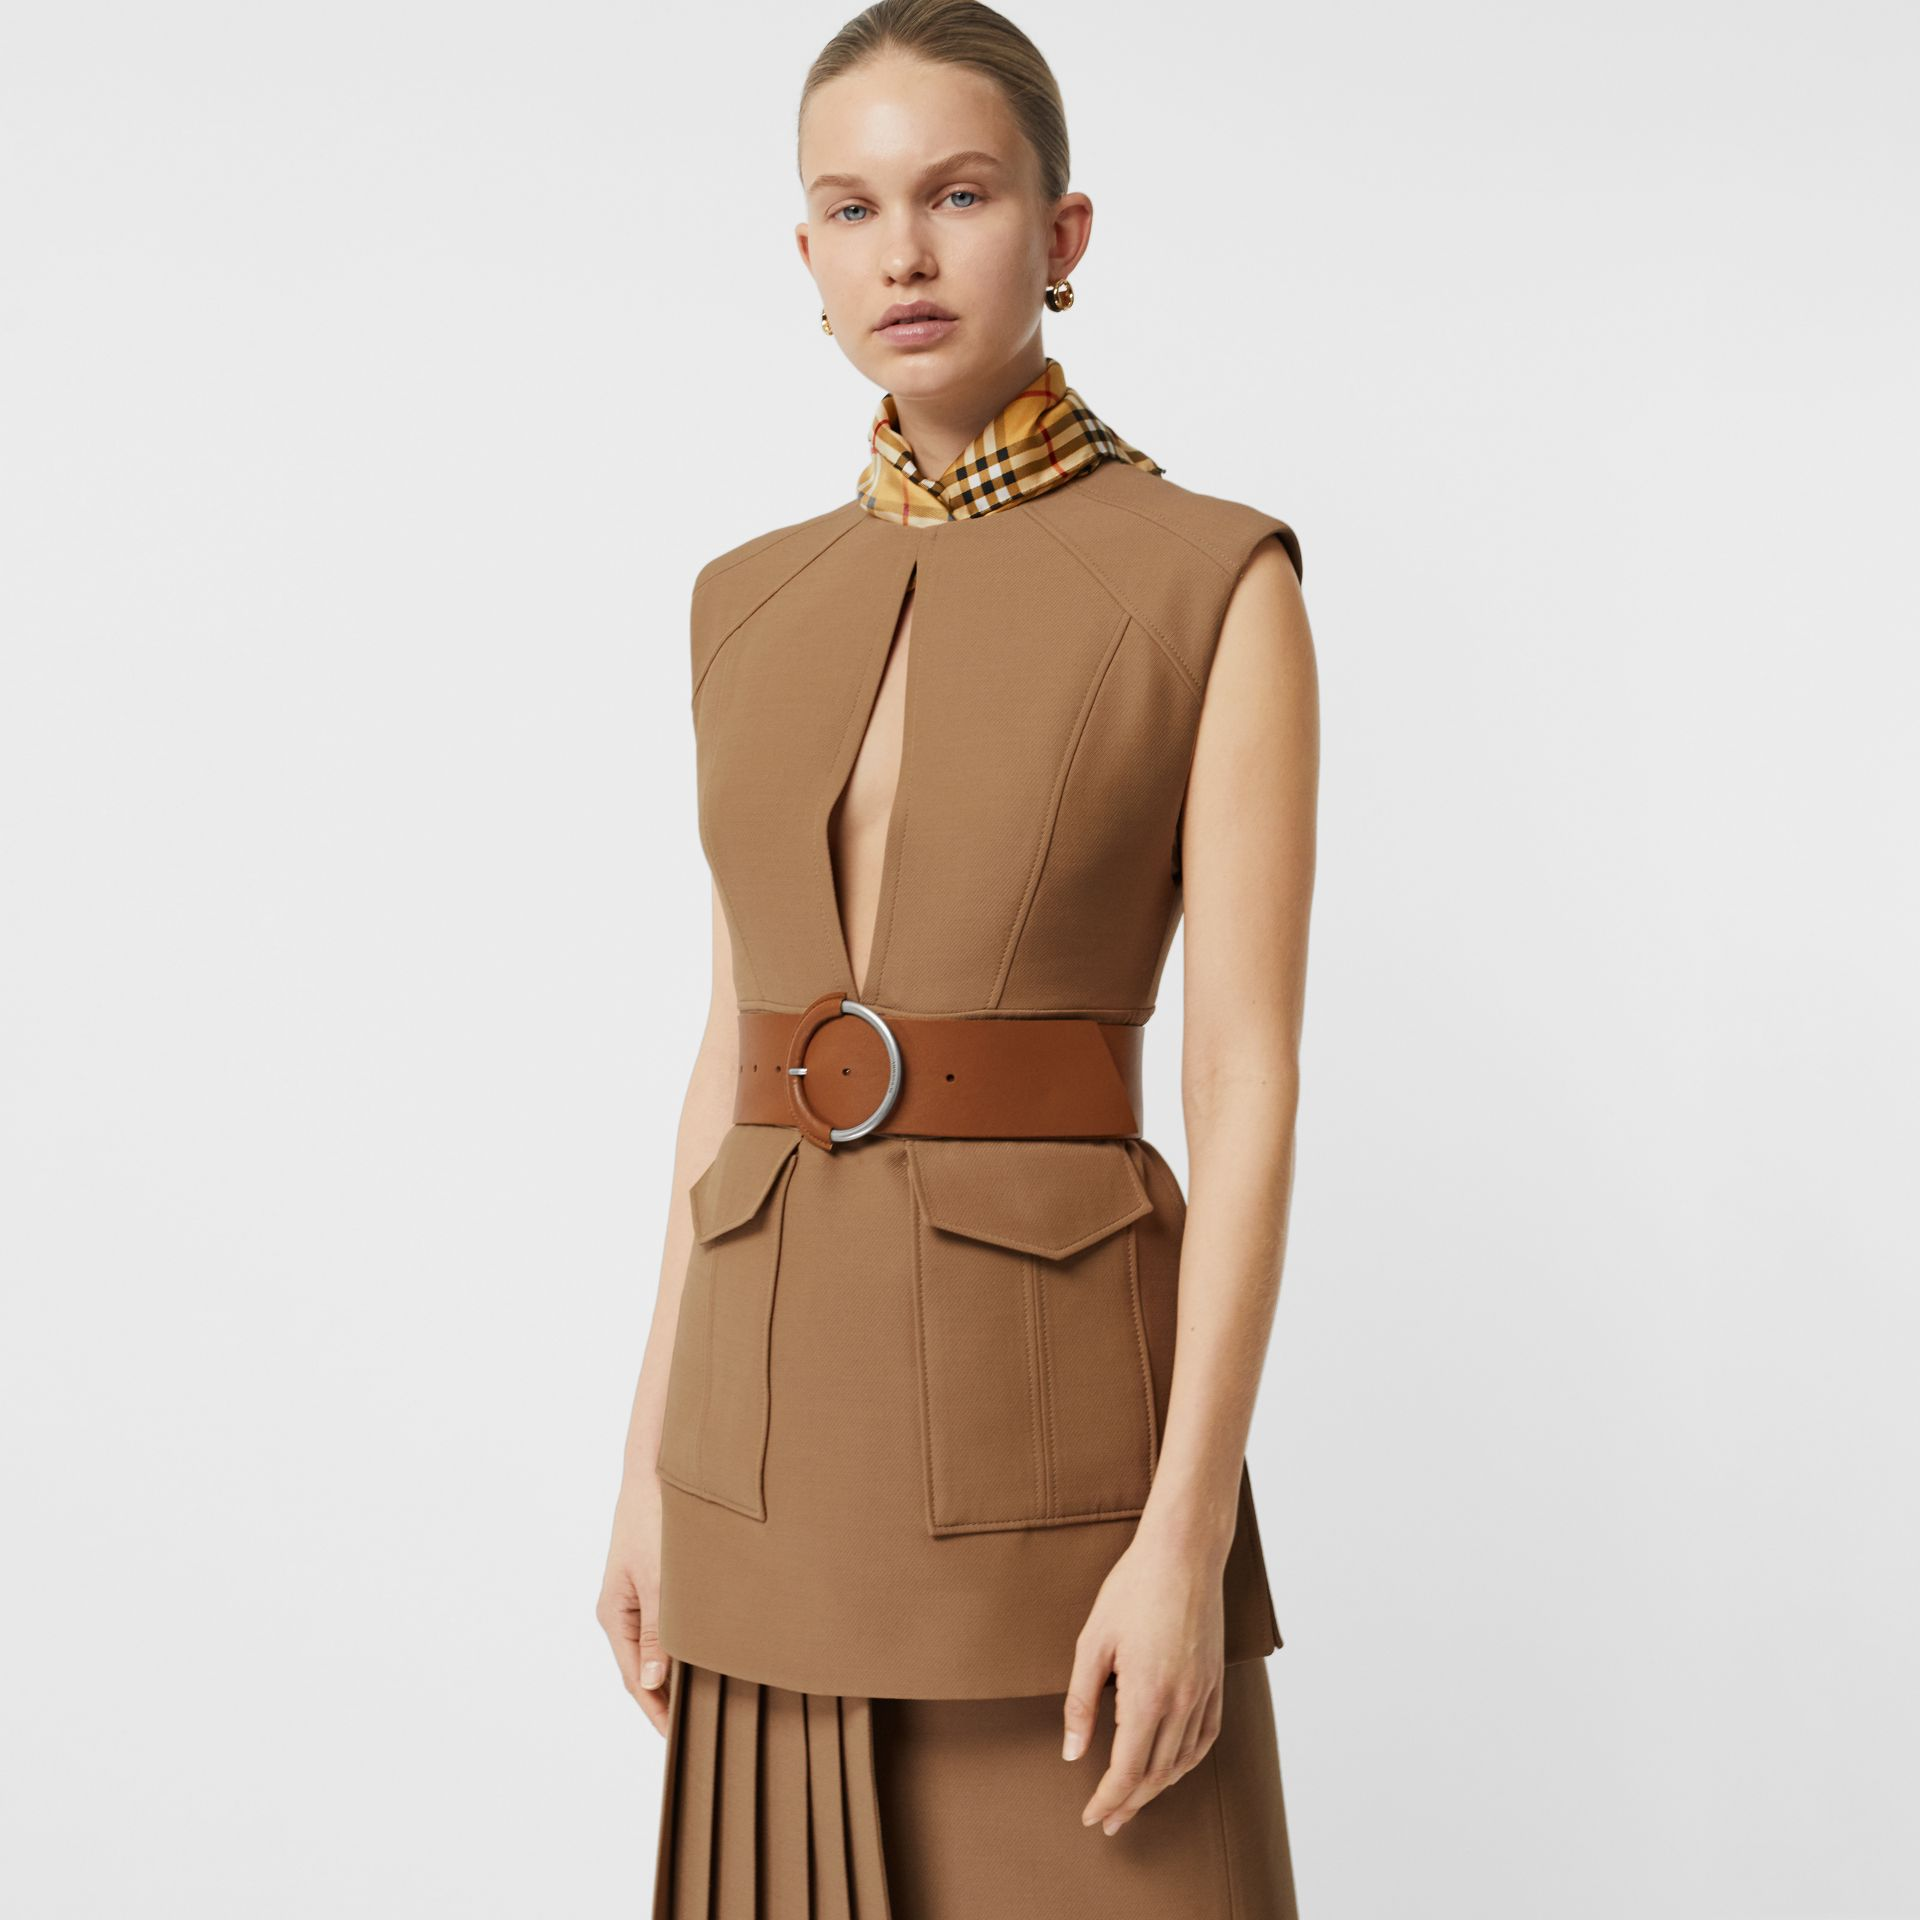 Keyhole Detail Sleeveless Wool Silk Top in Camel - Women | Burberry Canada - gallery image 4